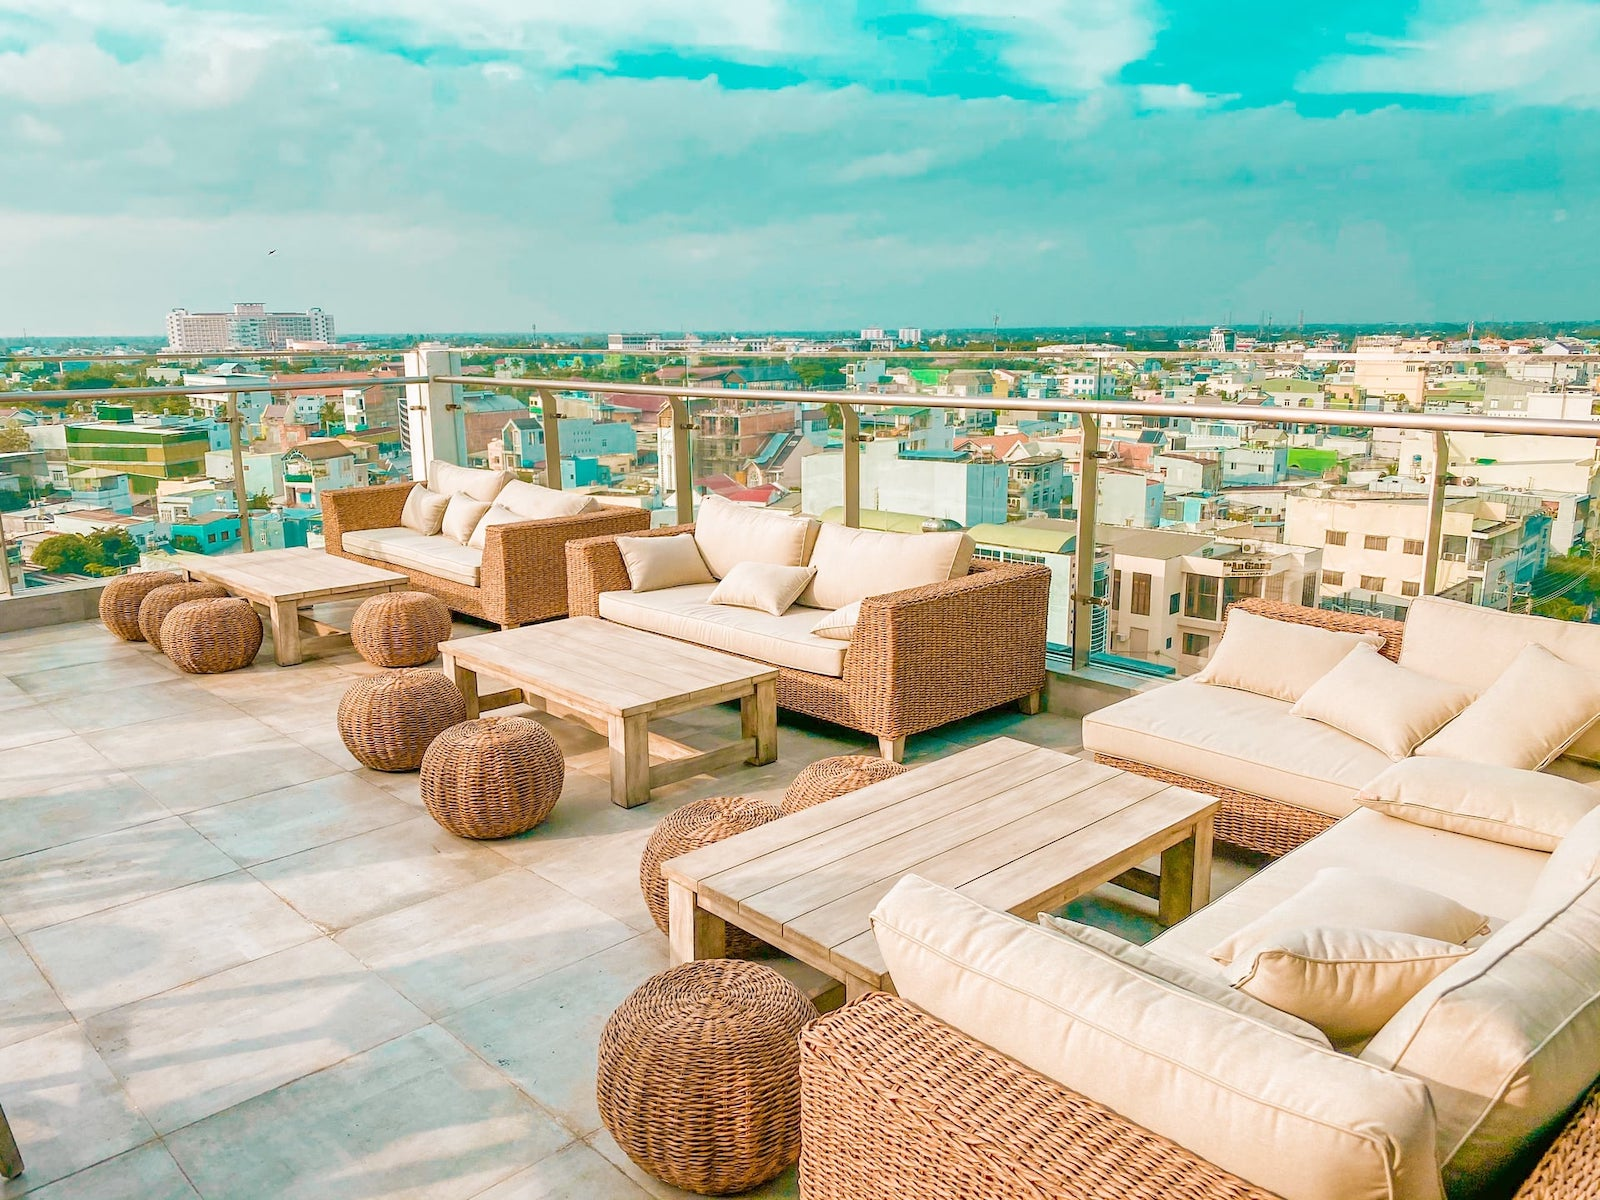 Image of the rooftop views from the Chau Khuong Hotel in Long Xuyen